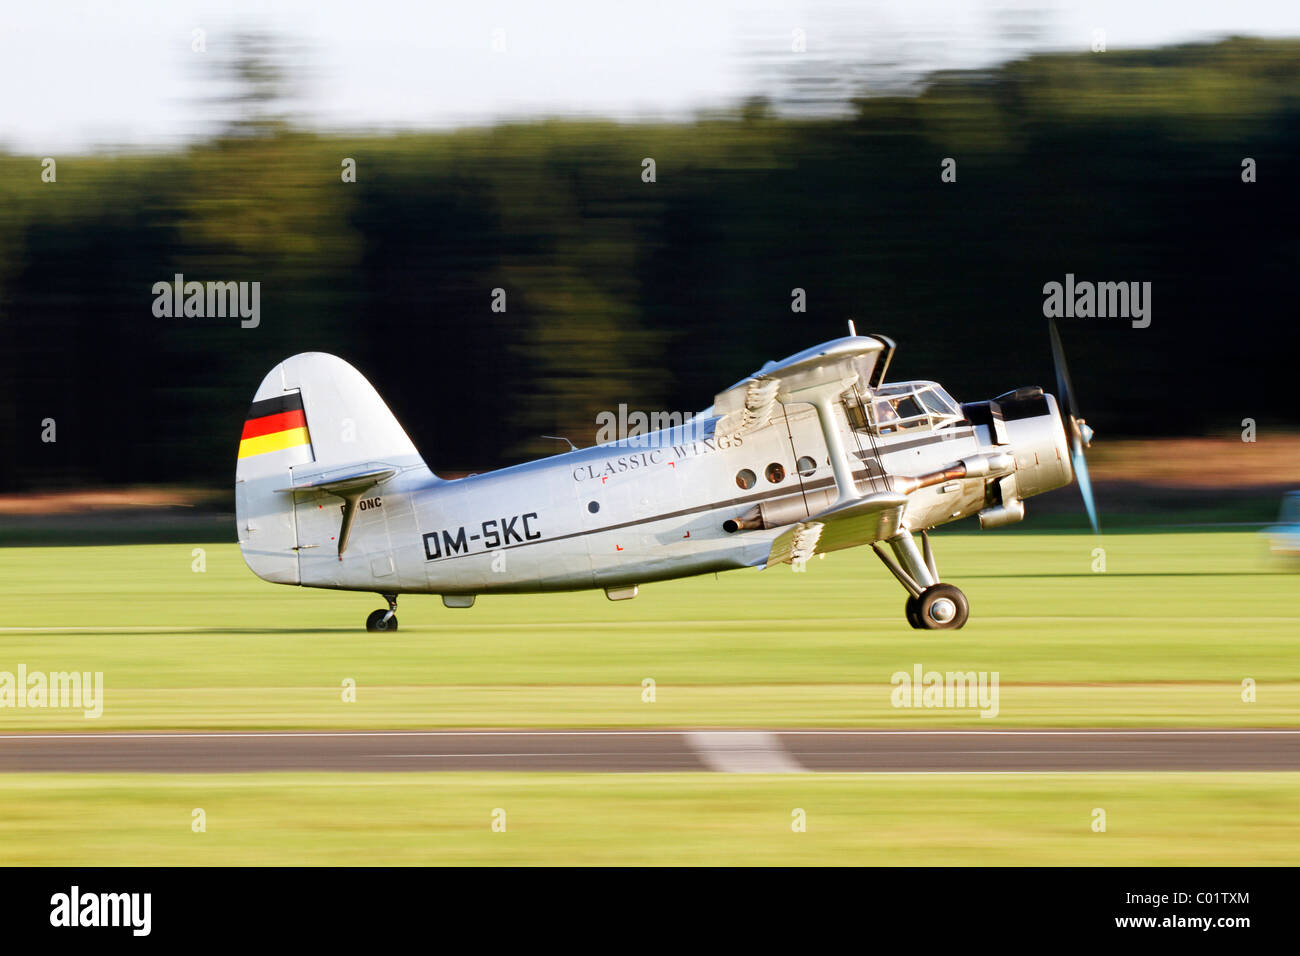 Vintage aircraft, Antonov AN-2, the largest single engine biplane in the world, Breitscheid Airshow 2010, Hesse, - Stock Image